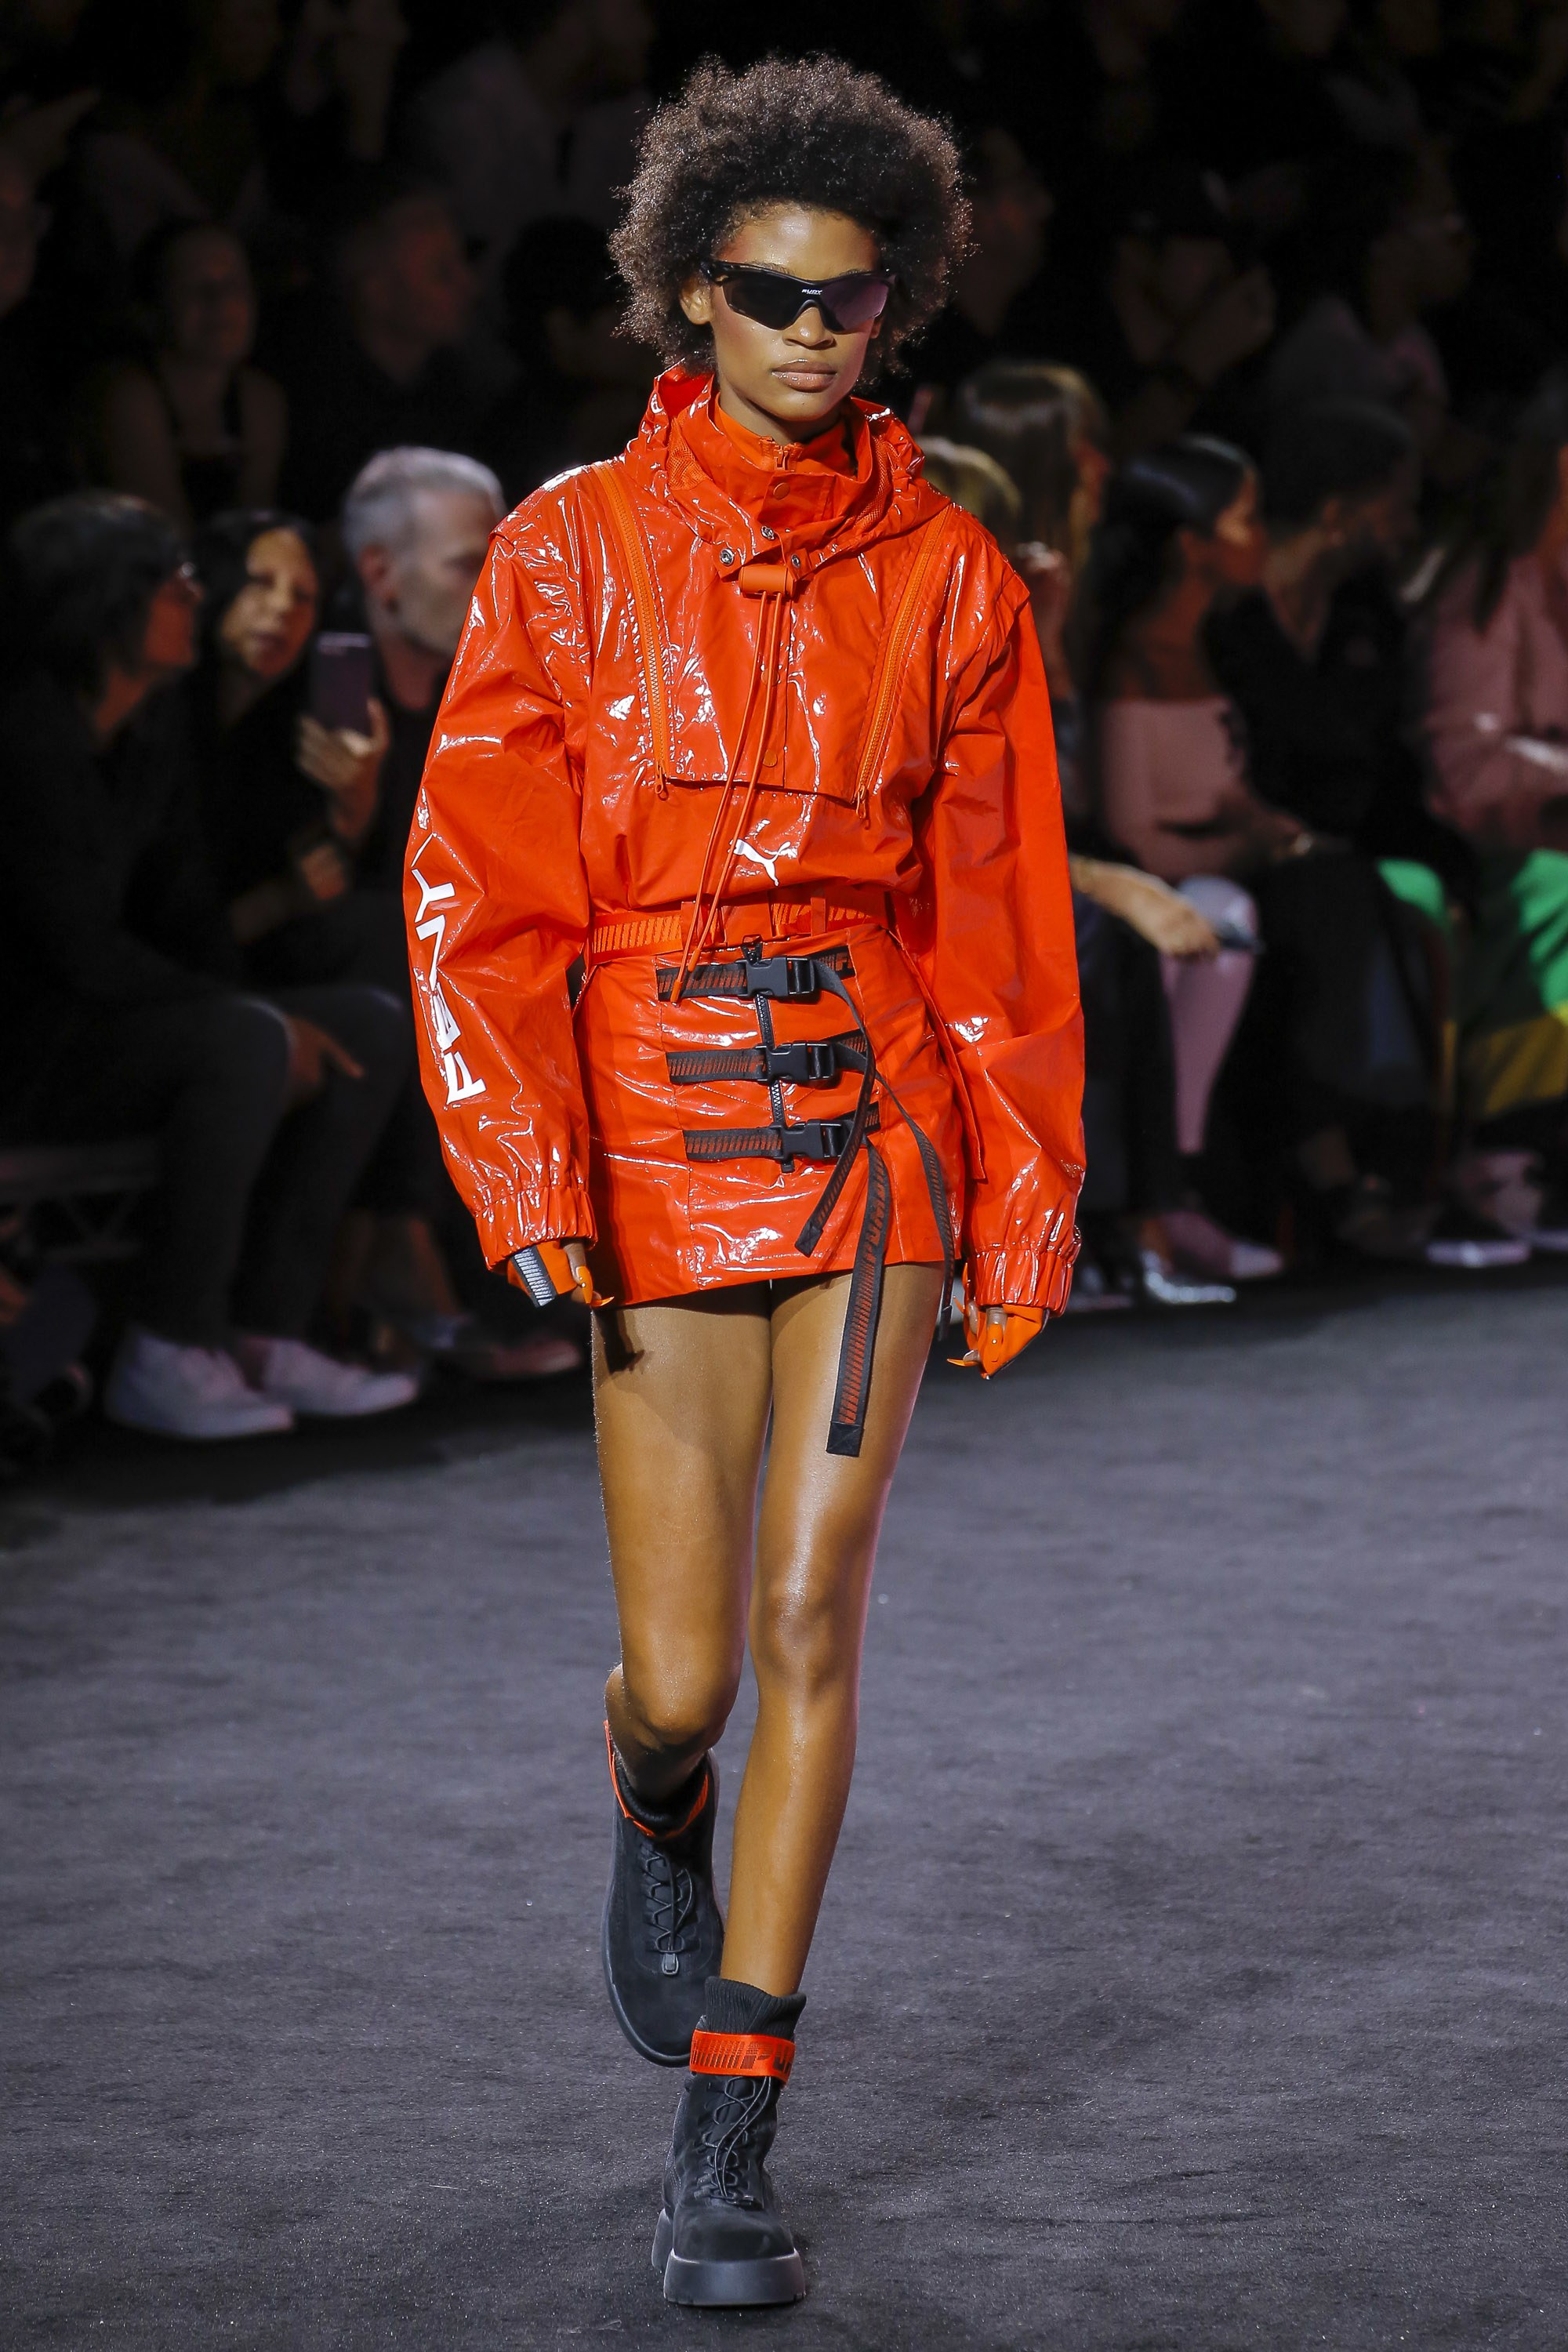 online store d4974 d31fd Rihanna's Fenty PUMA SS18 Show Was Out of The Ordinary ...